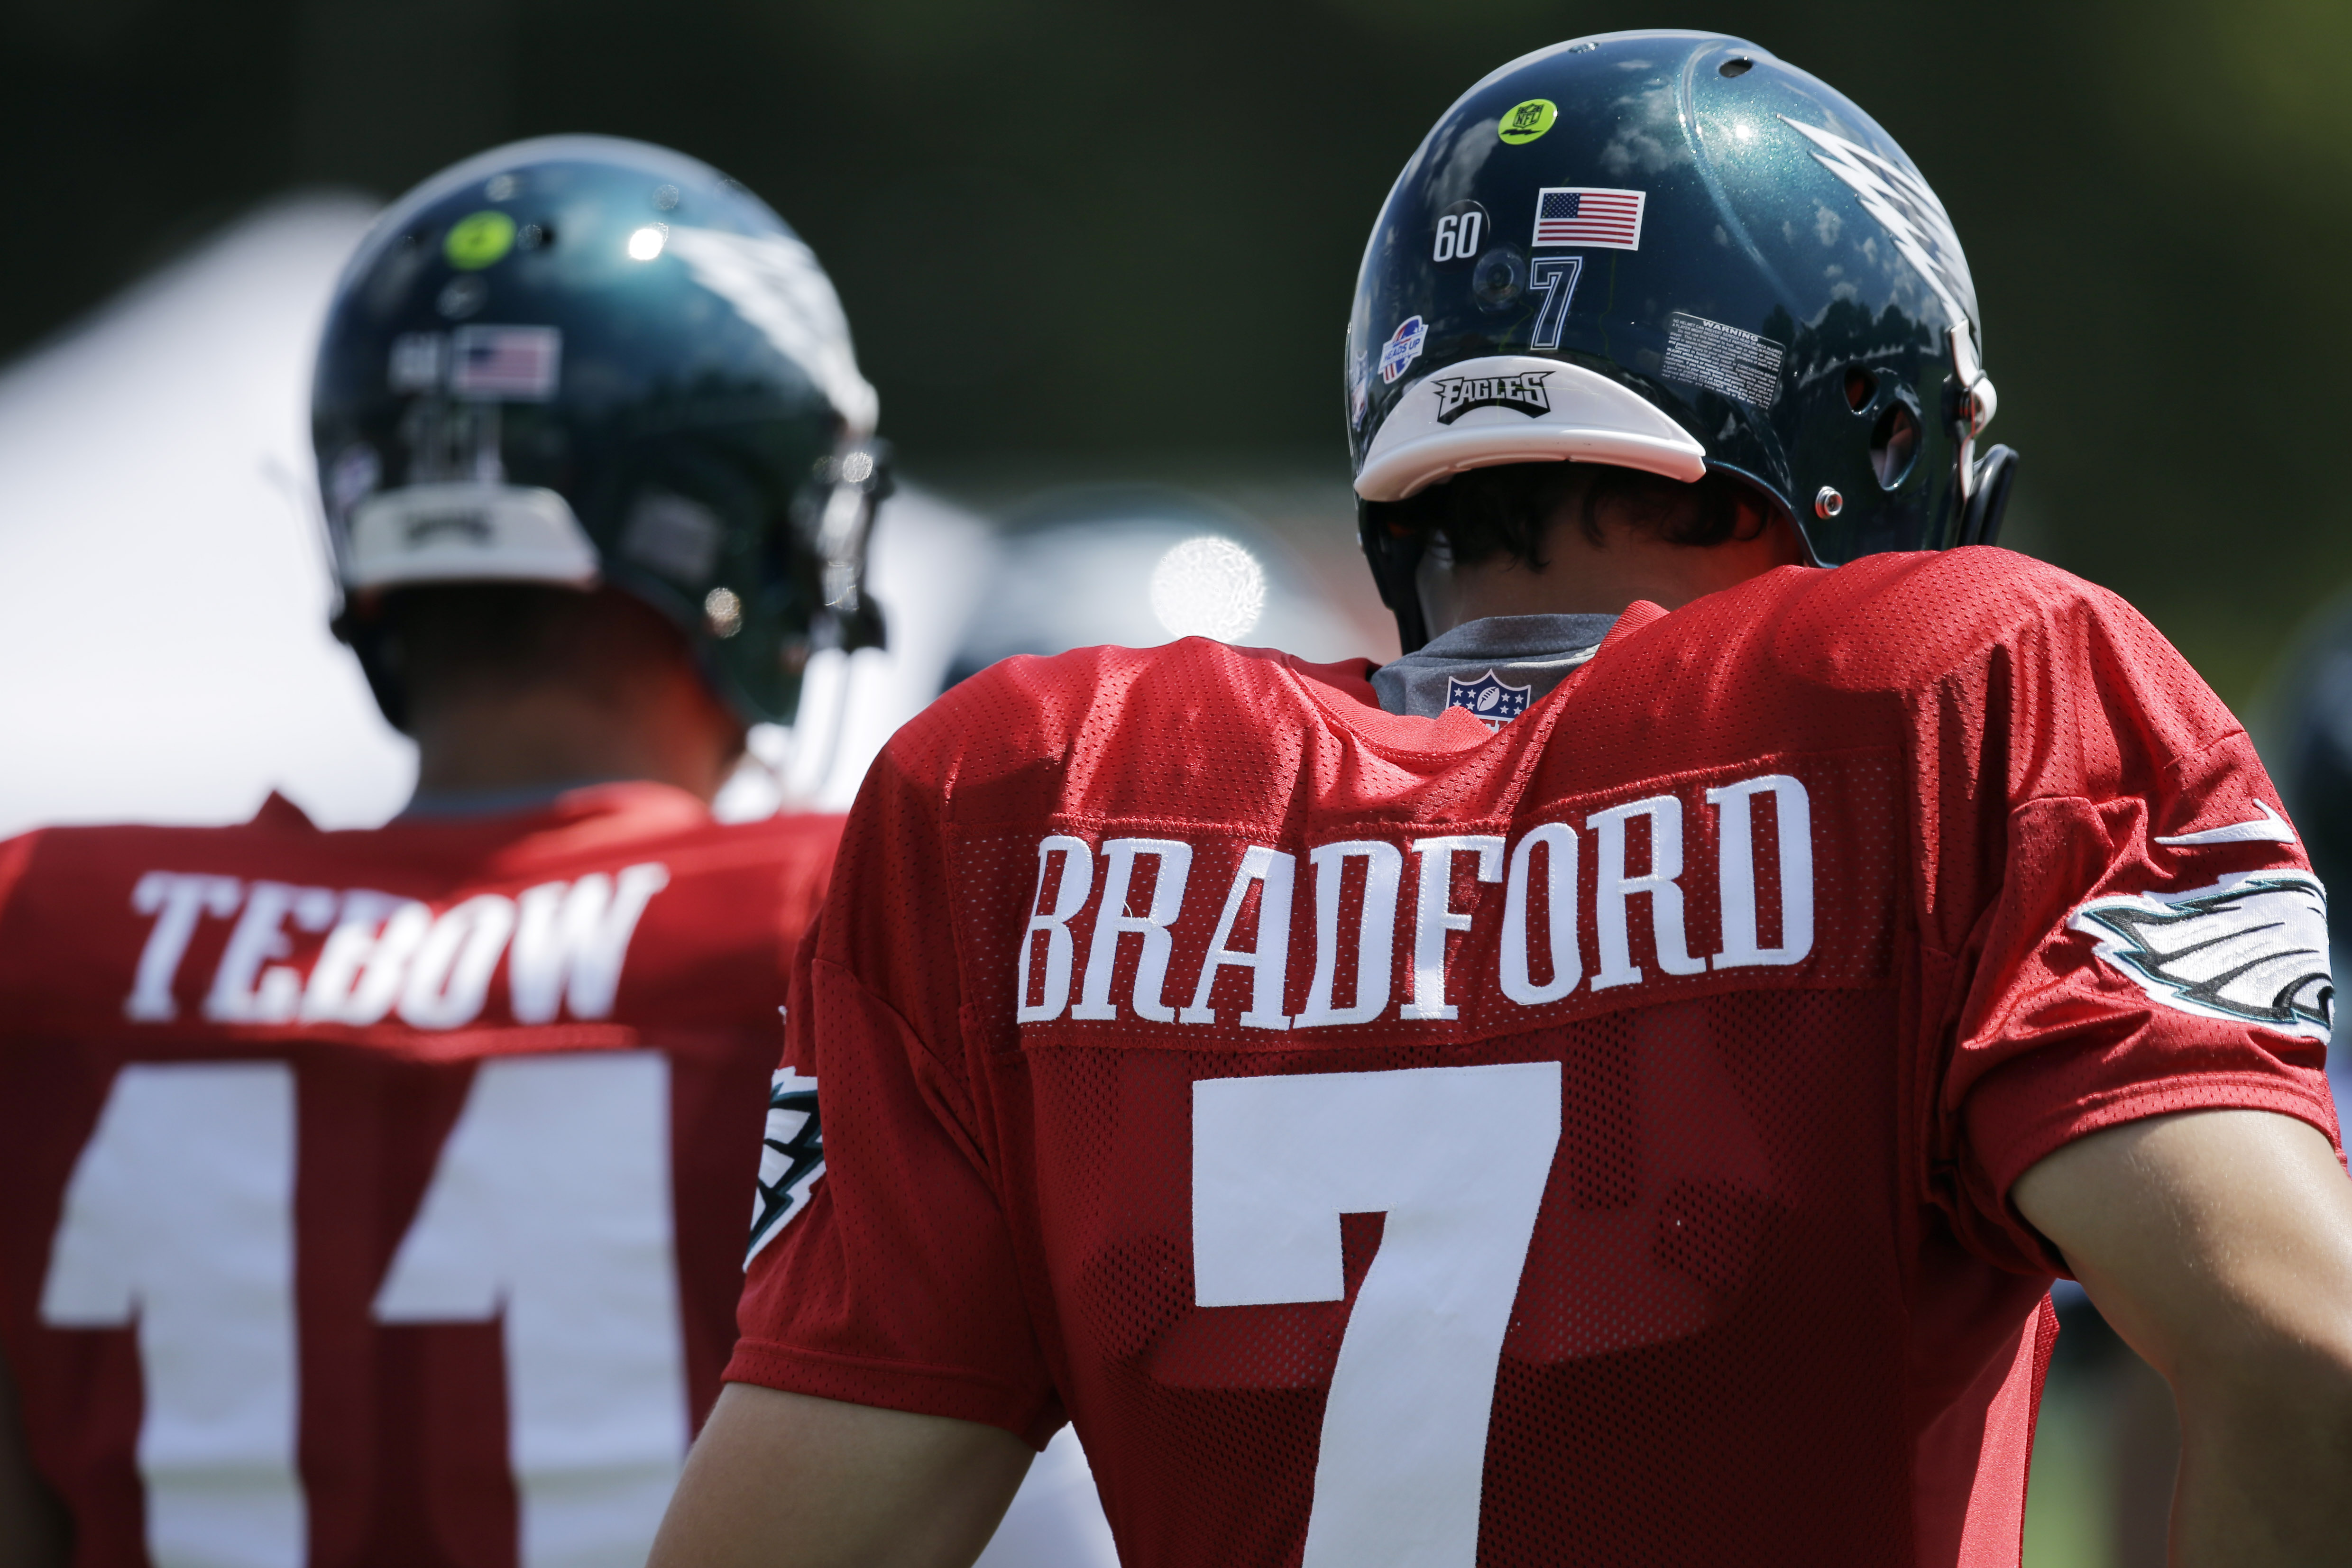 Philadelphia Eagles quarterbacks Sam Bradford, right, and Tim Tebow pause during warm ups before practice at NFL football training camp, Wednesday, Aug. 12, 2015, in Philadelphia. (AP Photo/Matt Slocum)